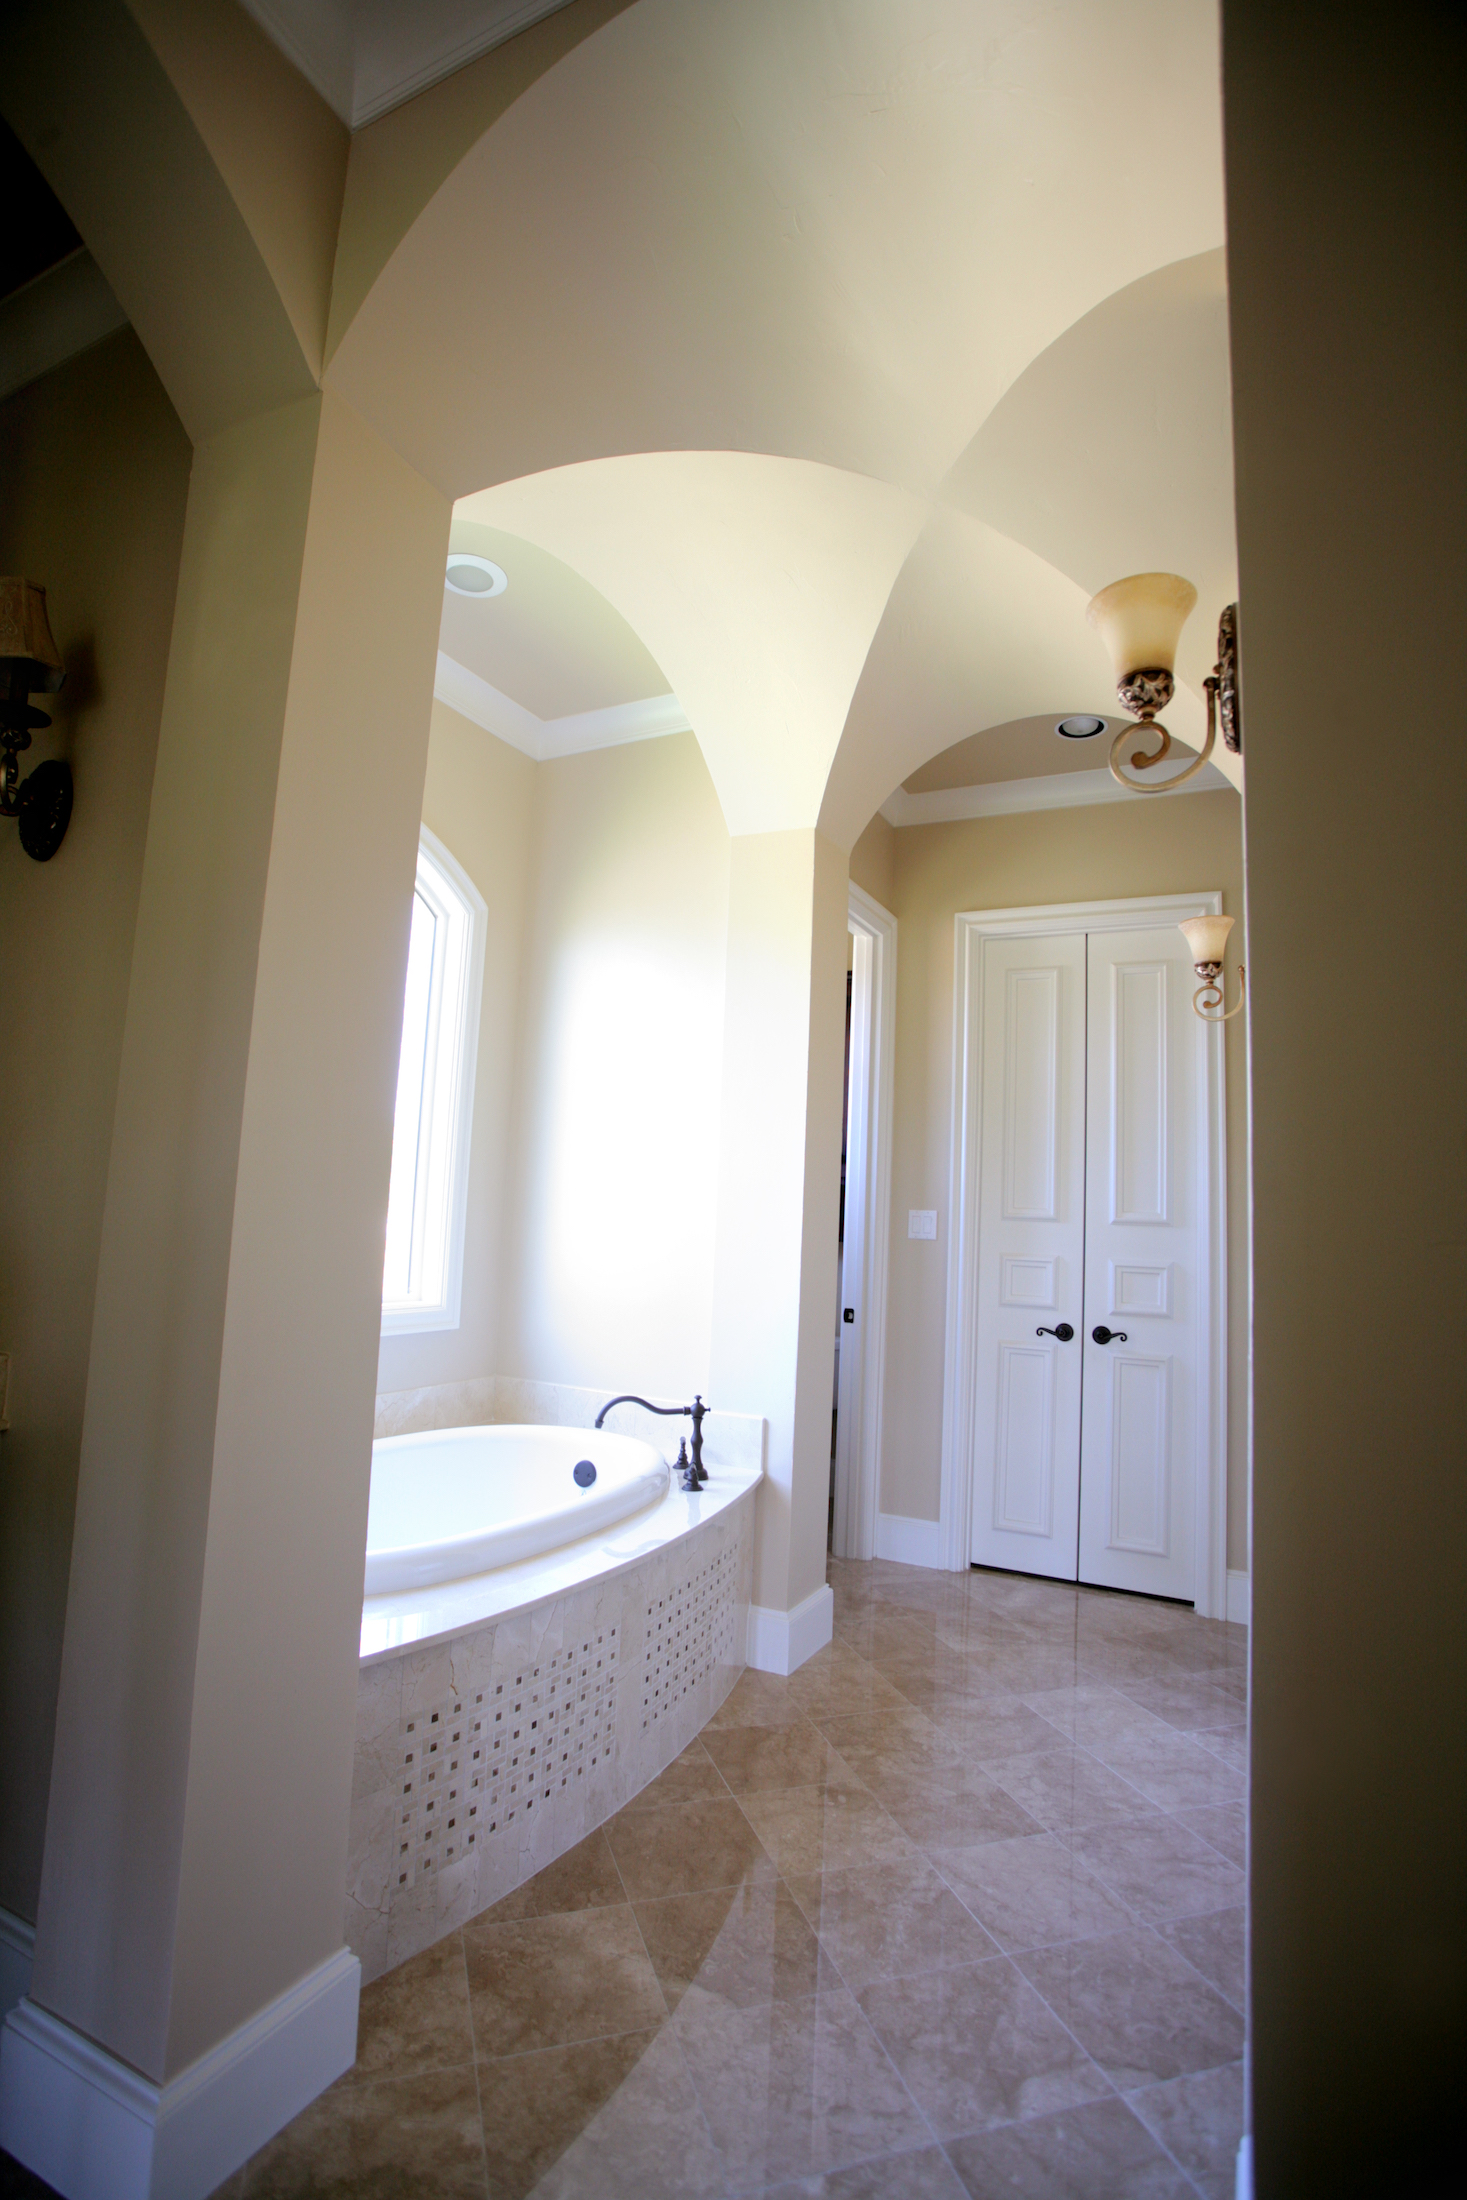 Bathroom Design (Custom Texas Homes): Groin Arch in Master Bath